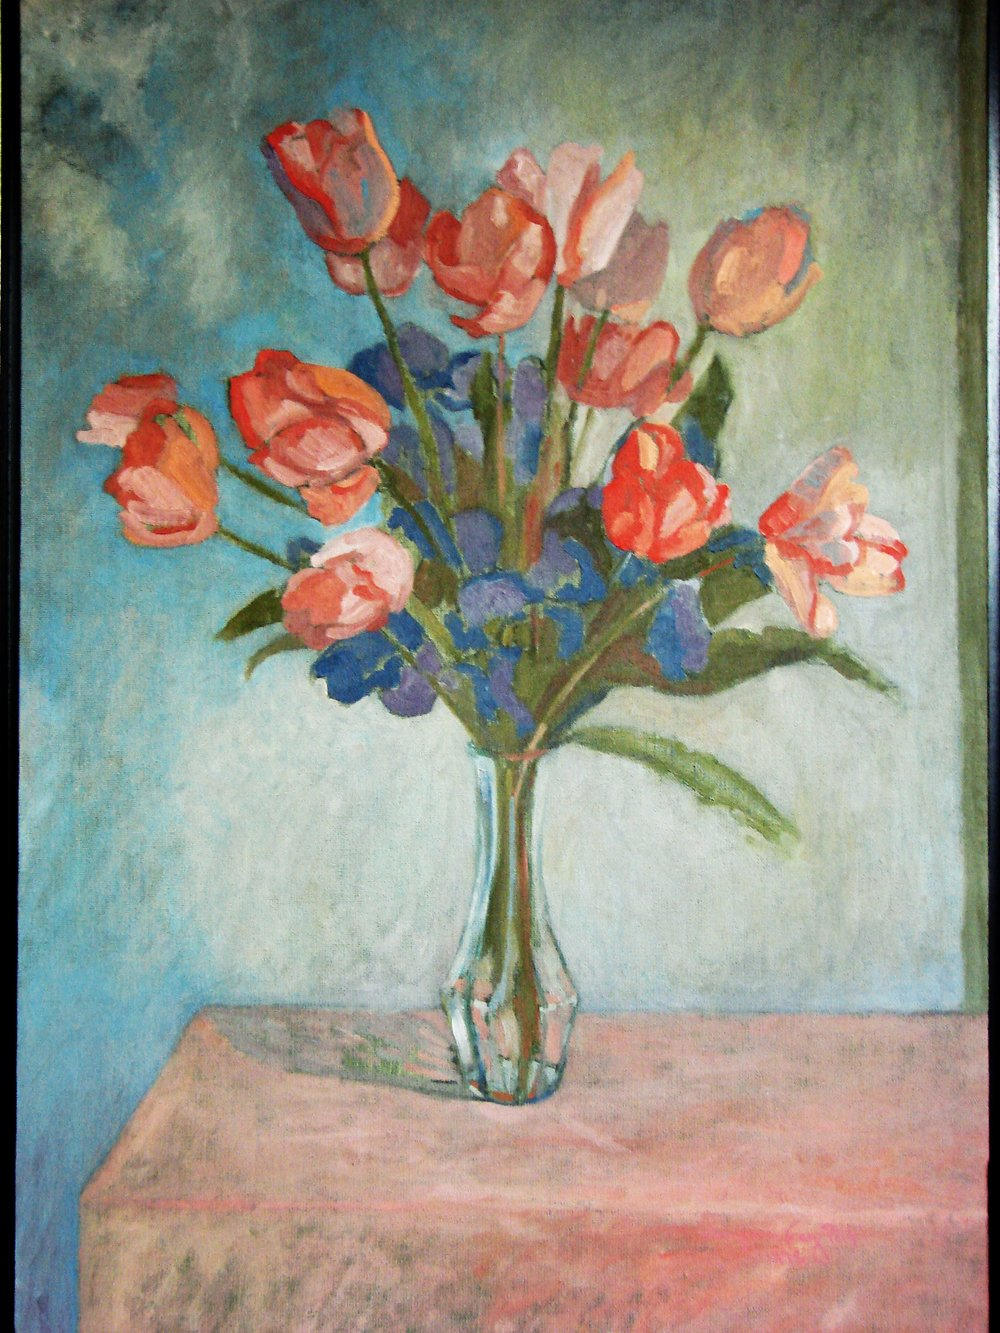 TULIOS WITH IRIS #1 OIL ON CANVAS 24X18.JPG